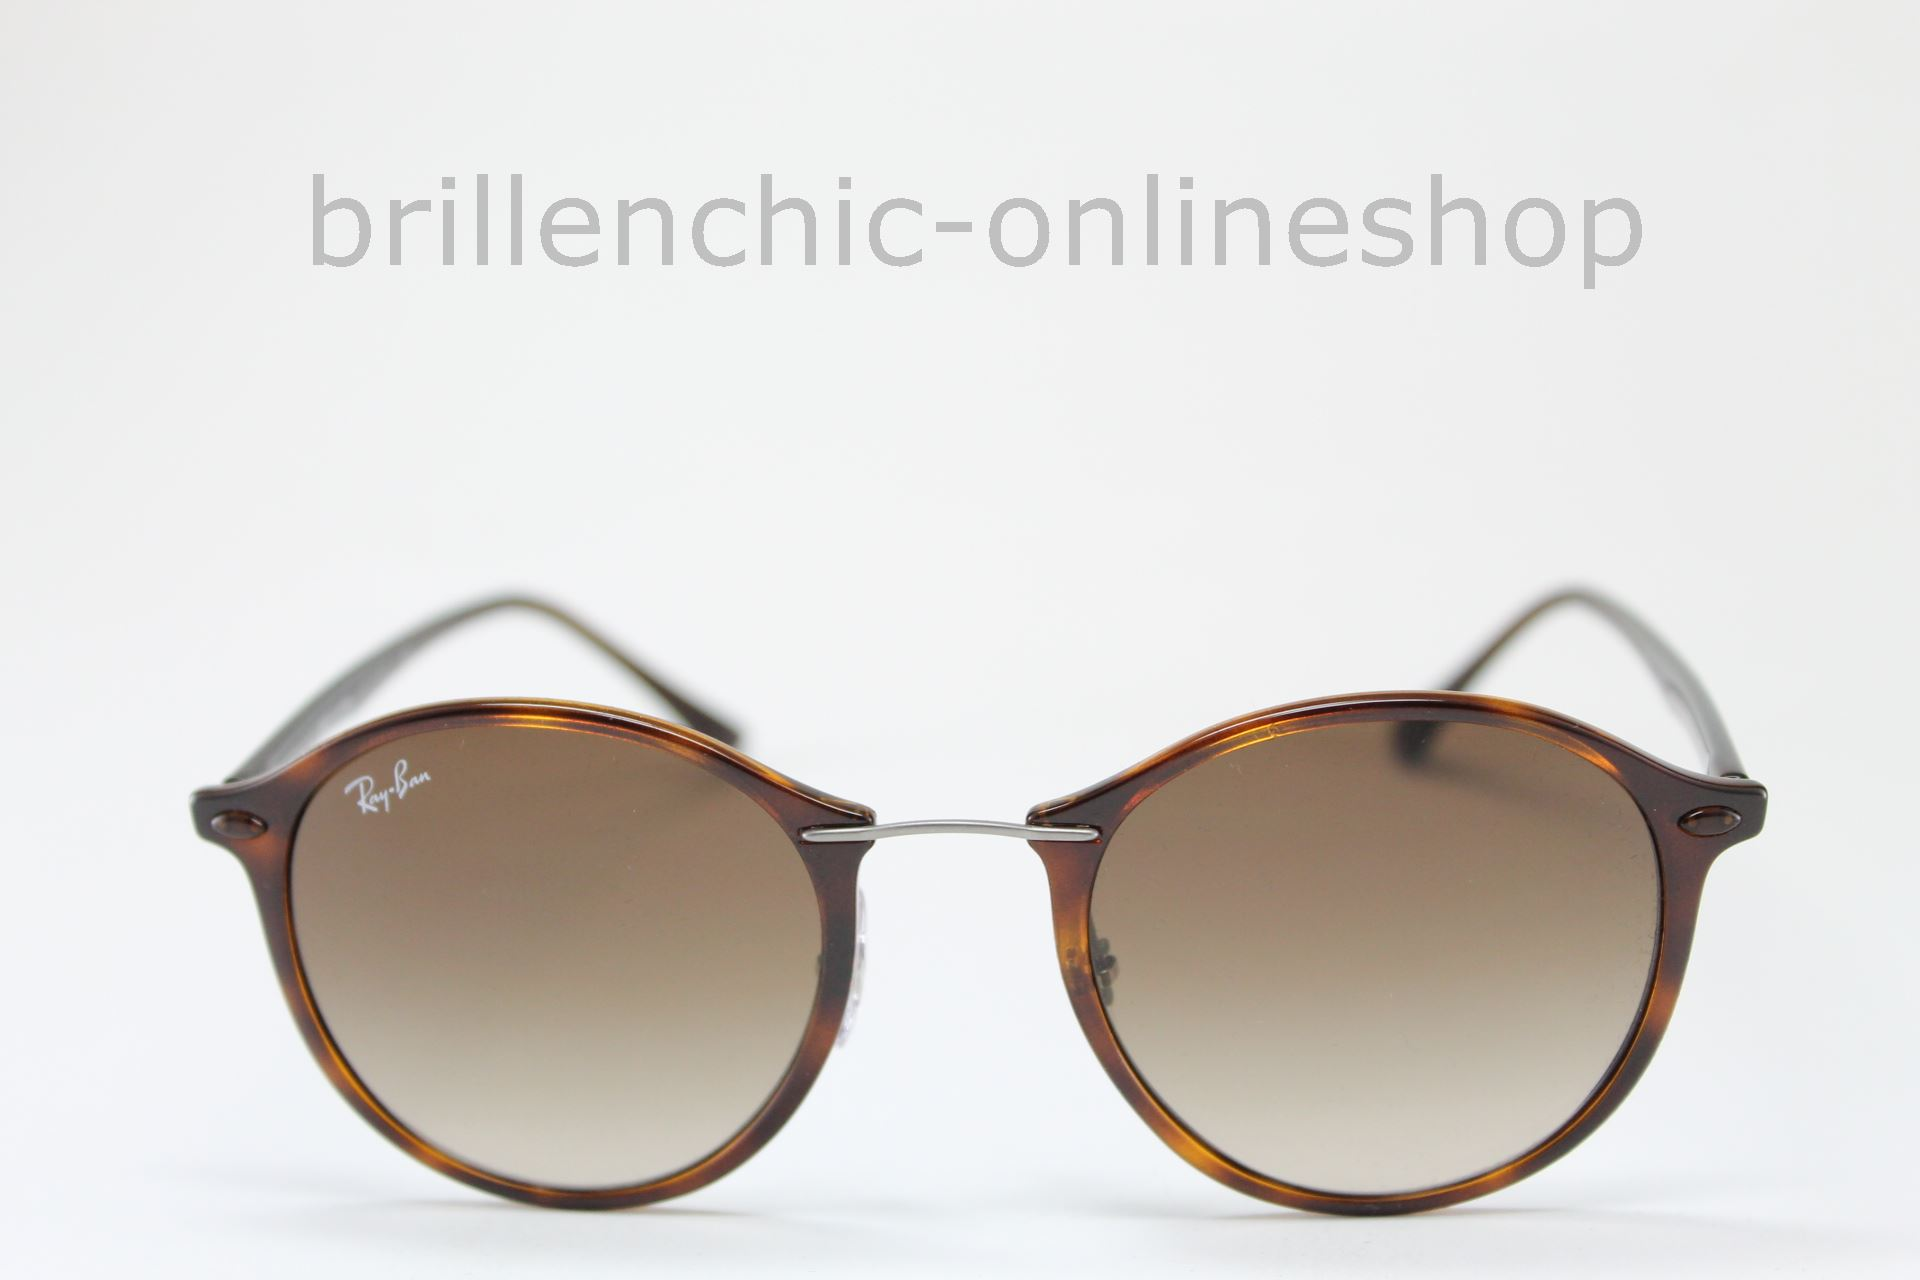 a05c7d60c8f Brillenchic-onlineshop in Berlin - Ray Ban ROUND II LIGHT RAY RB ...